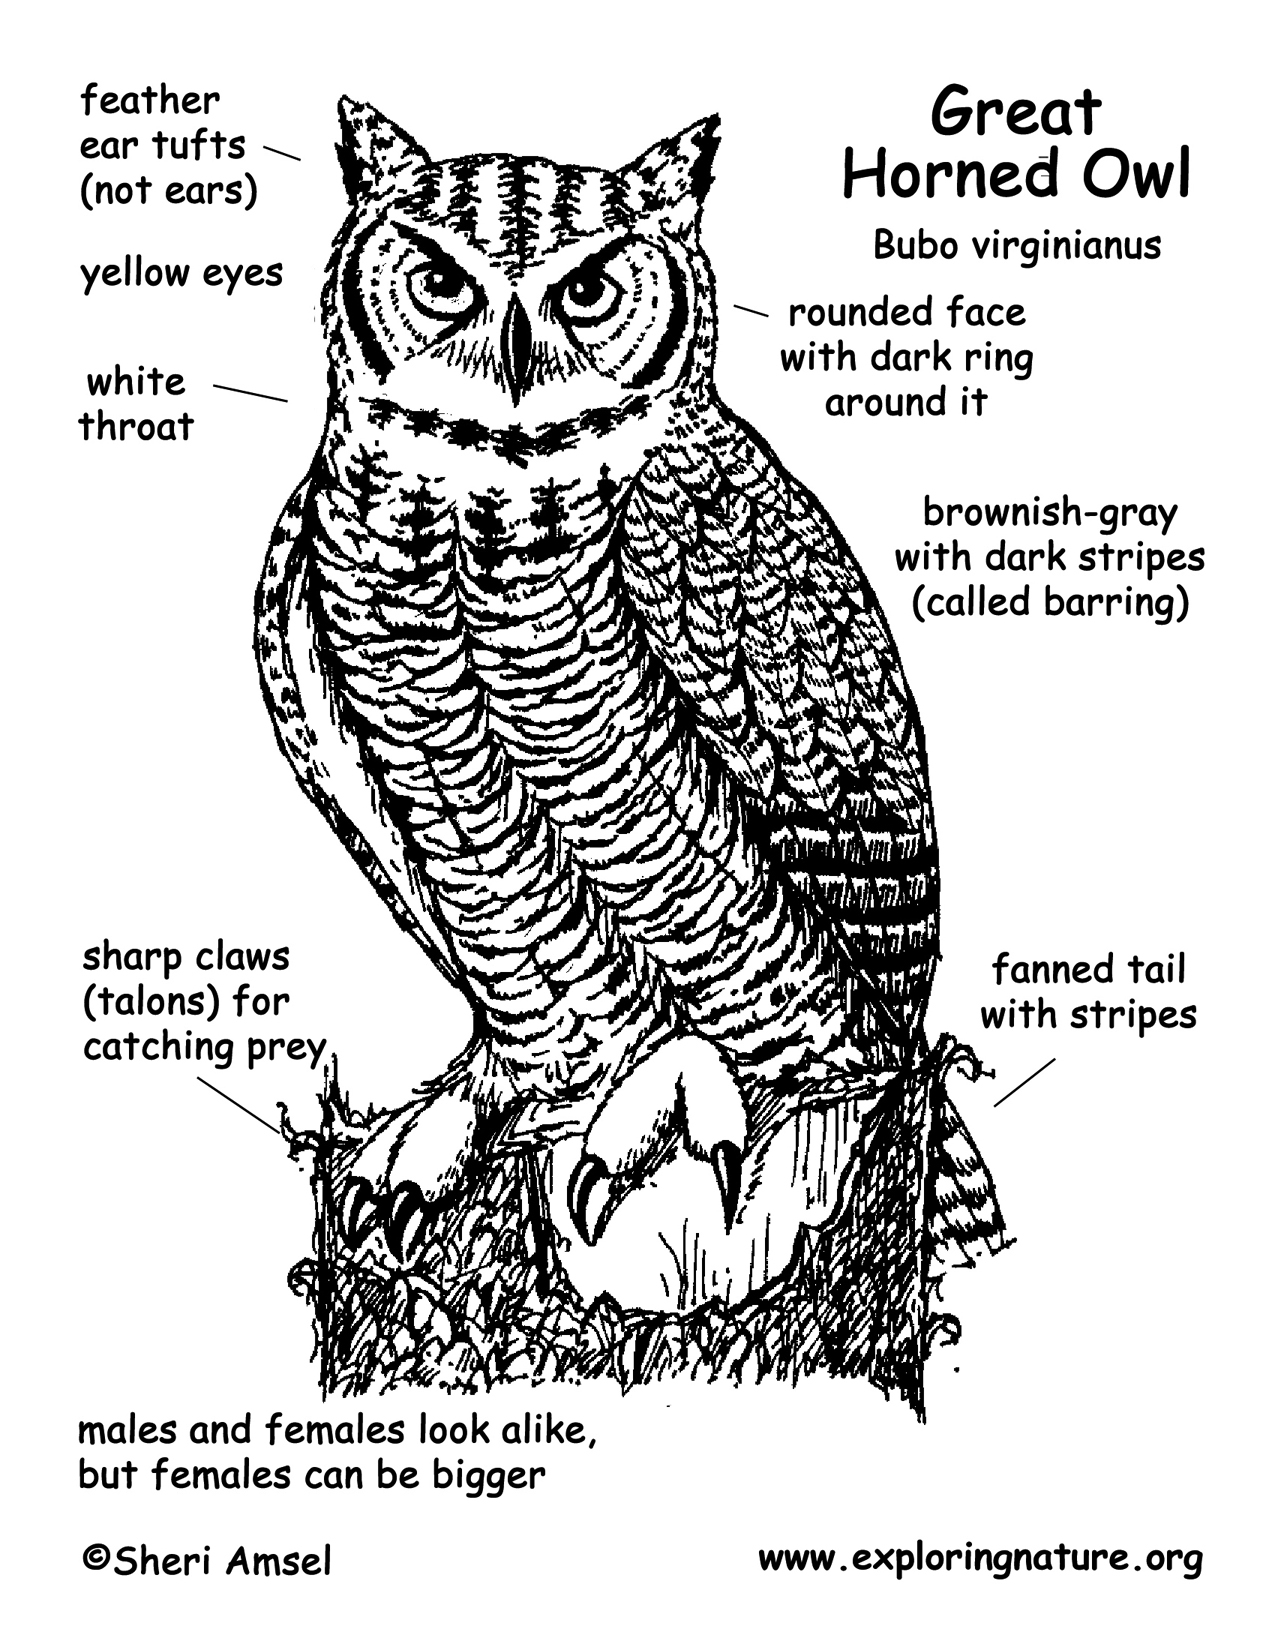 great horned owl coloring pages - photo#29